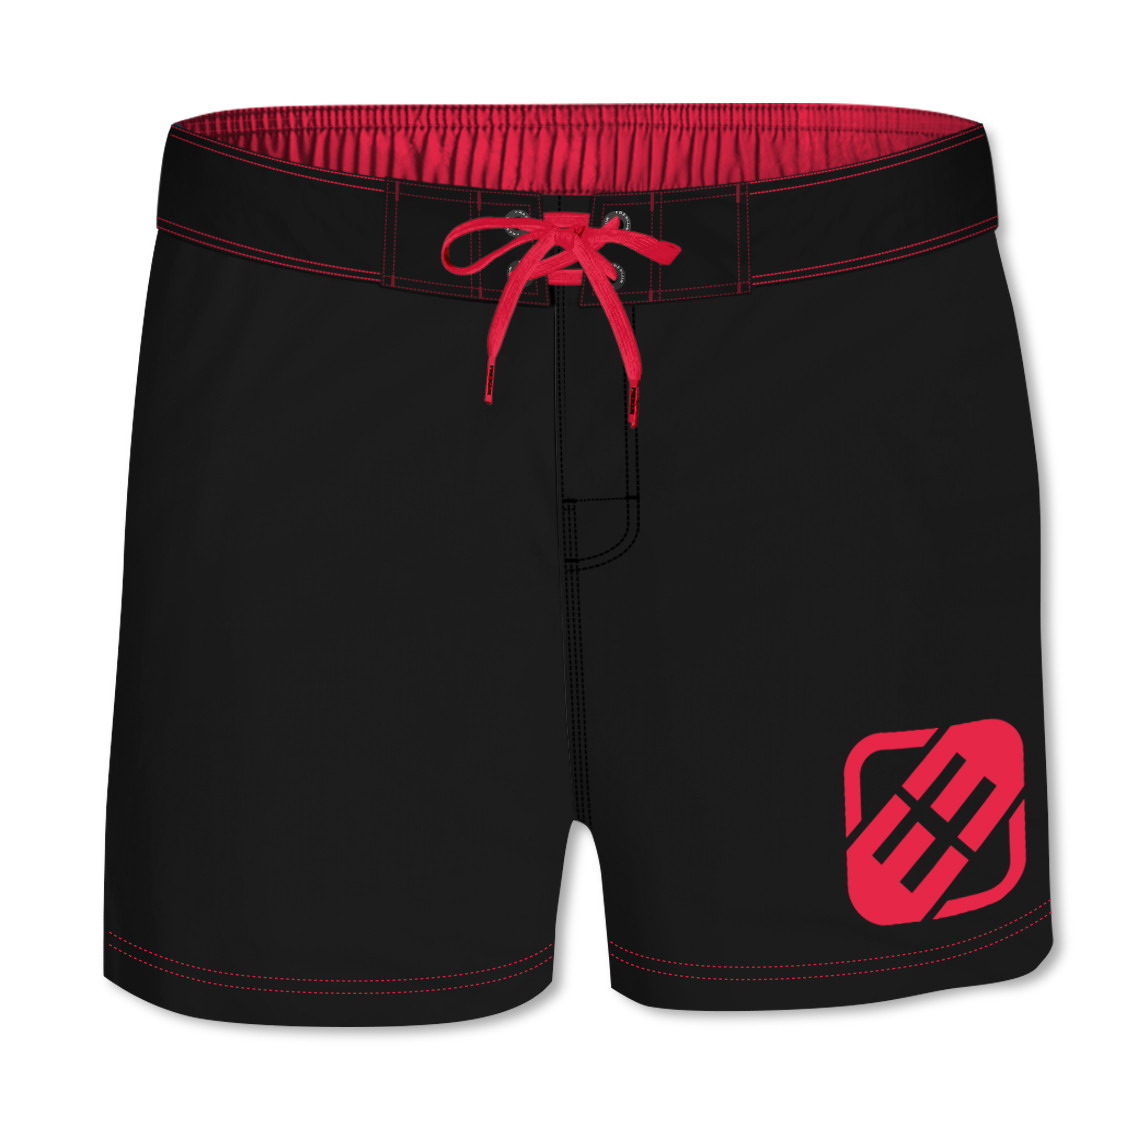 Boardshort court garçon freegun uni rouge (photo)